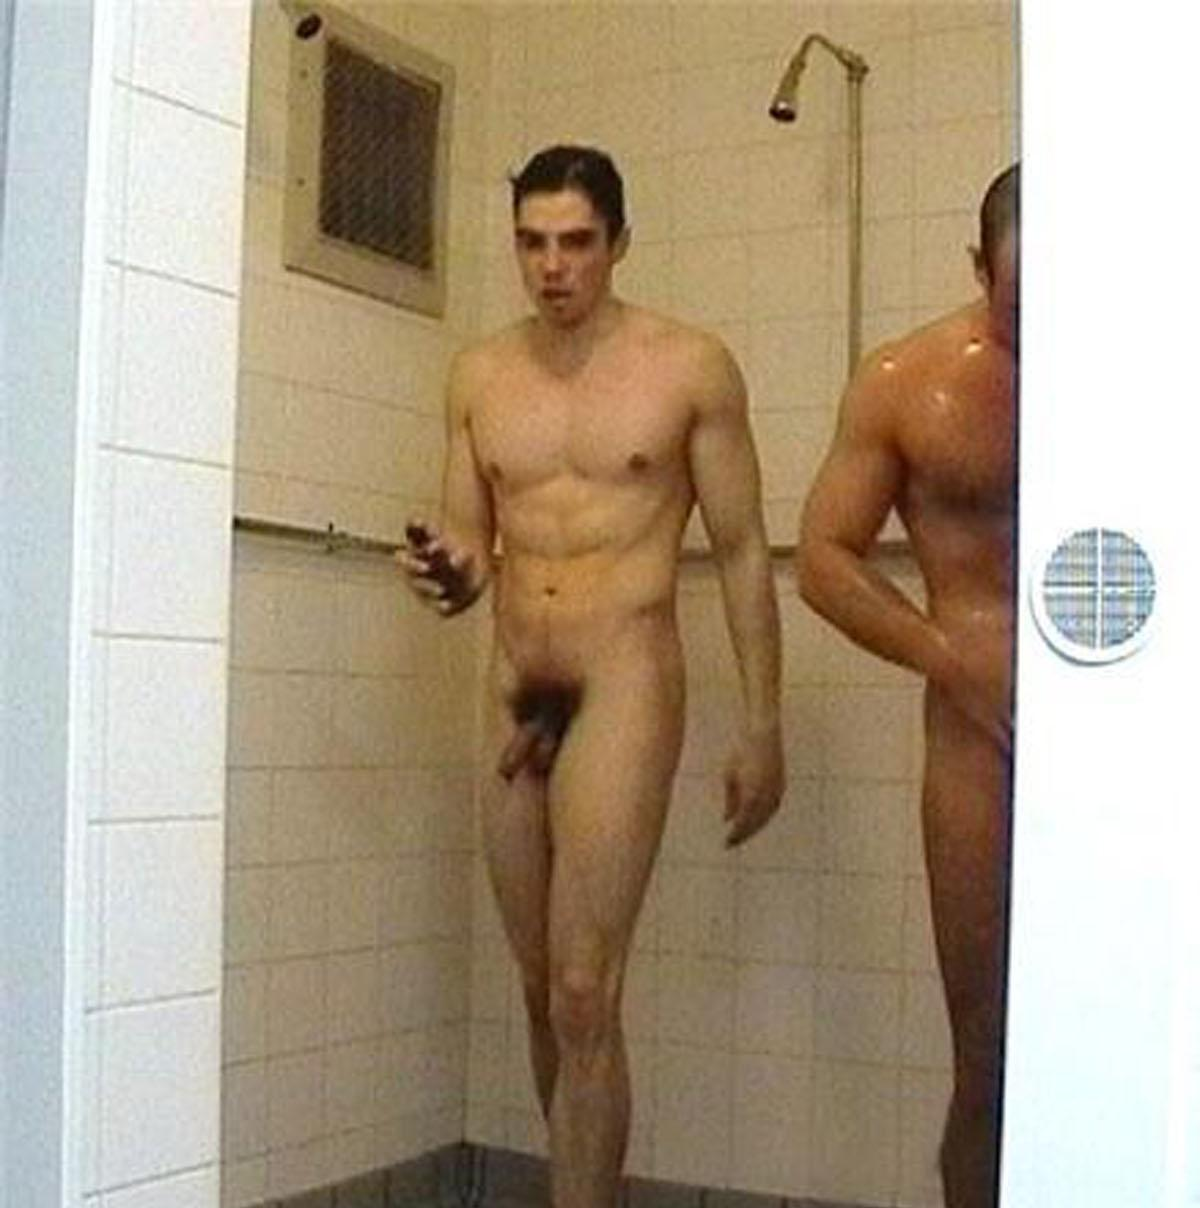 nude shower shot of kaka circulating on the internet do you think its